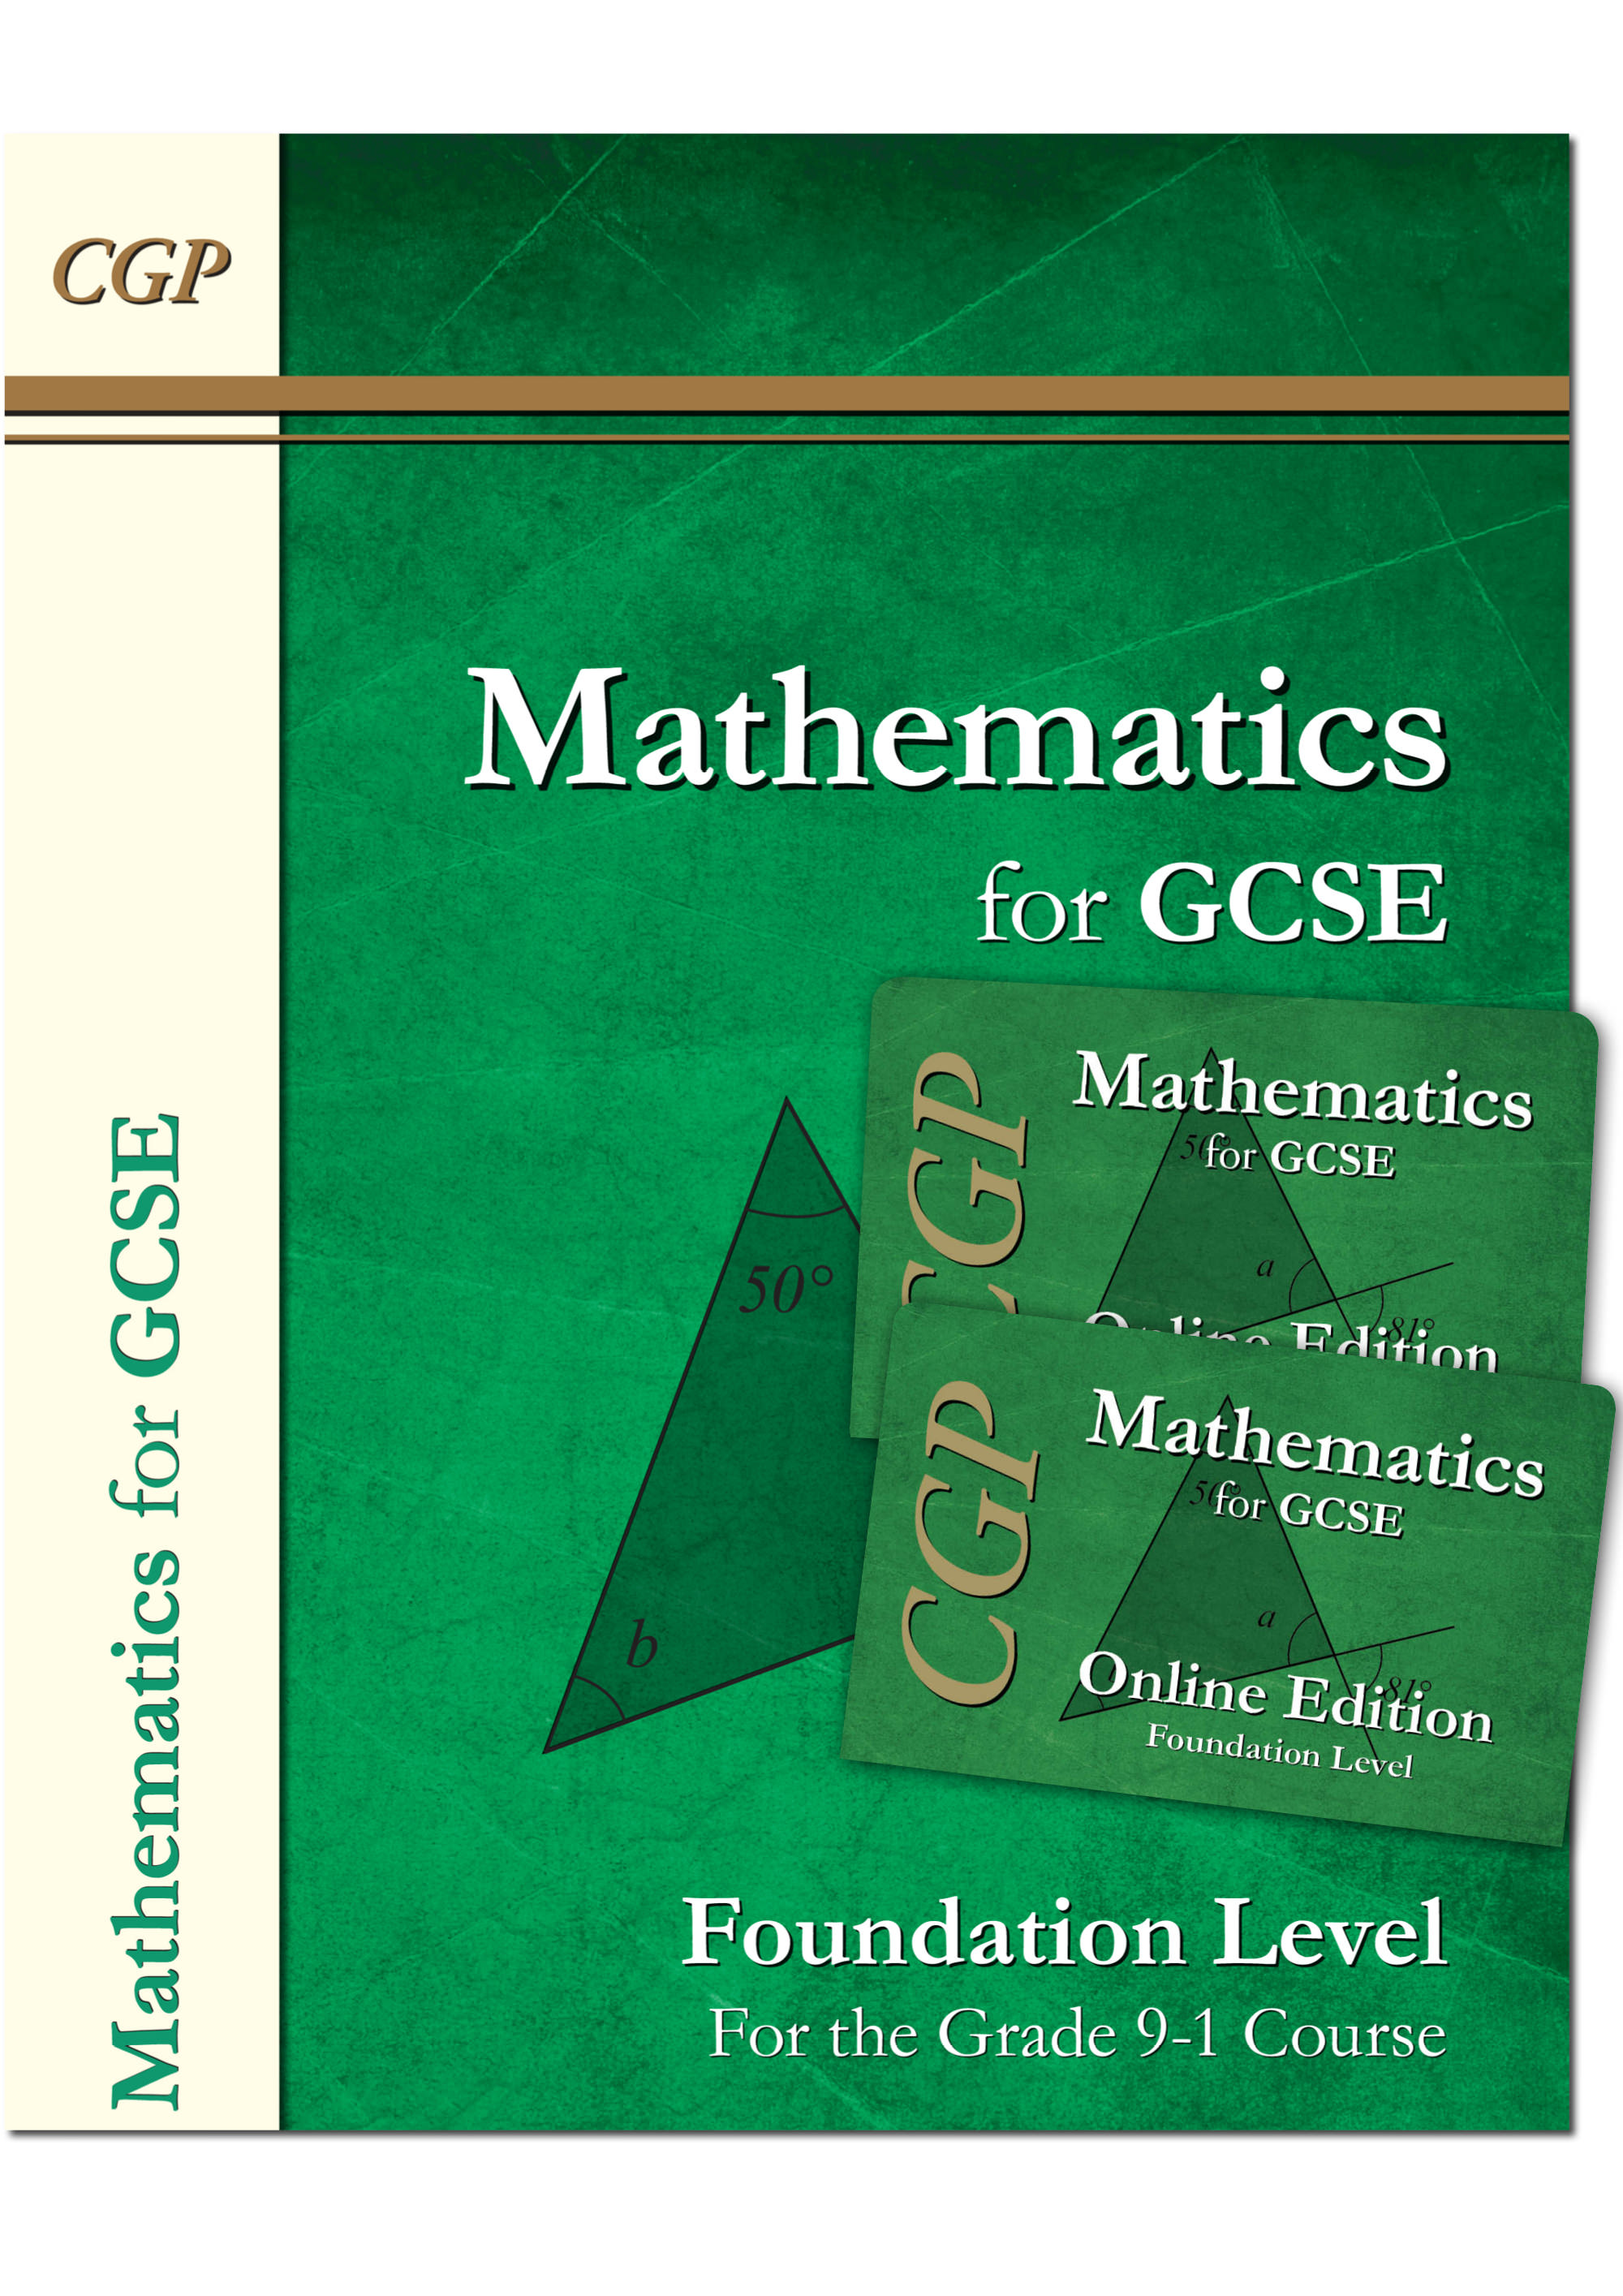 MFNB42 - New Maths for GCSE Textbook: Foundn - incl 2 online editions with answers (for the Grade 9-